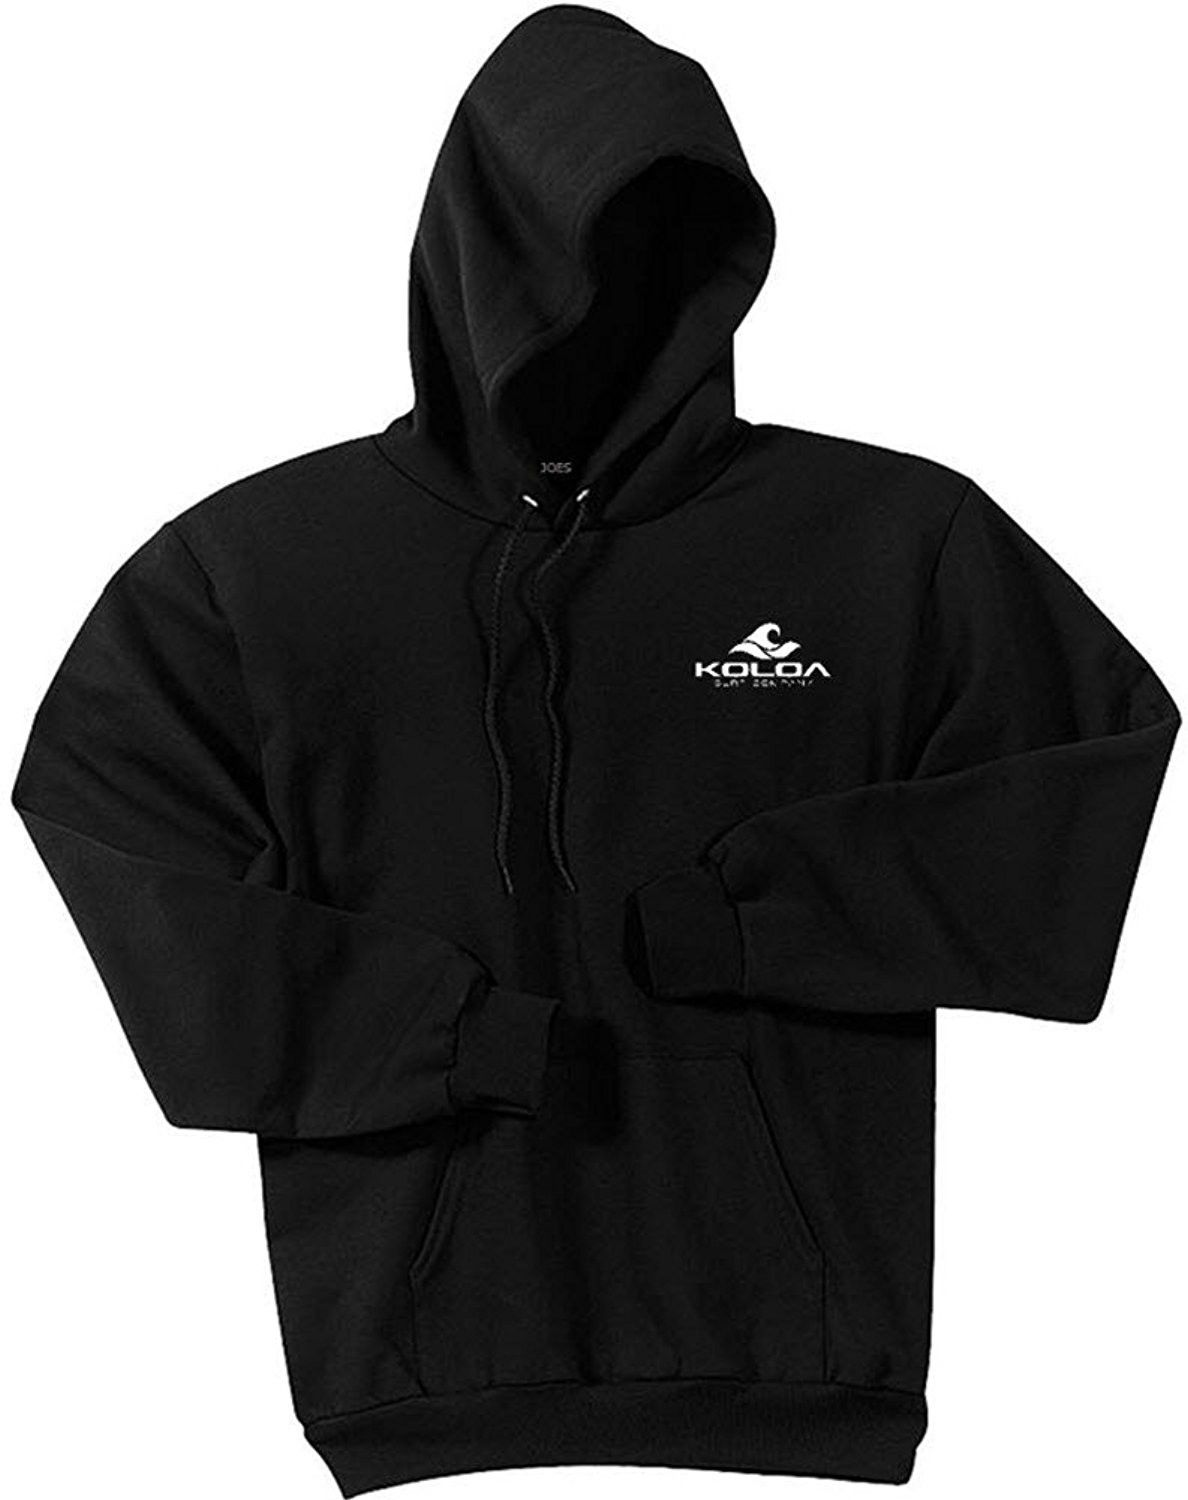 be6732fa4dc5b Men's Clothing, Active, Active Hoodies, Koloa Surf Classic Wave Logo Hoodies.  Hooded Sweatshirts In Sizes S-5XL - Black - CY12454AKW5 #Active #men  #fashion ...